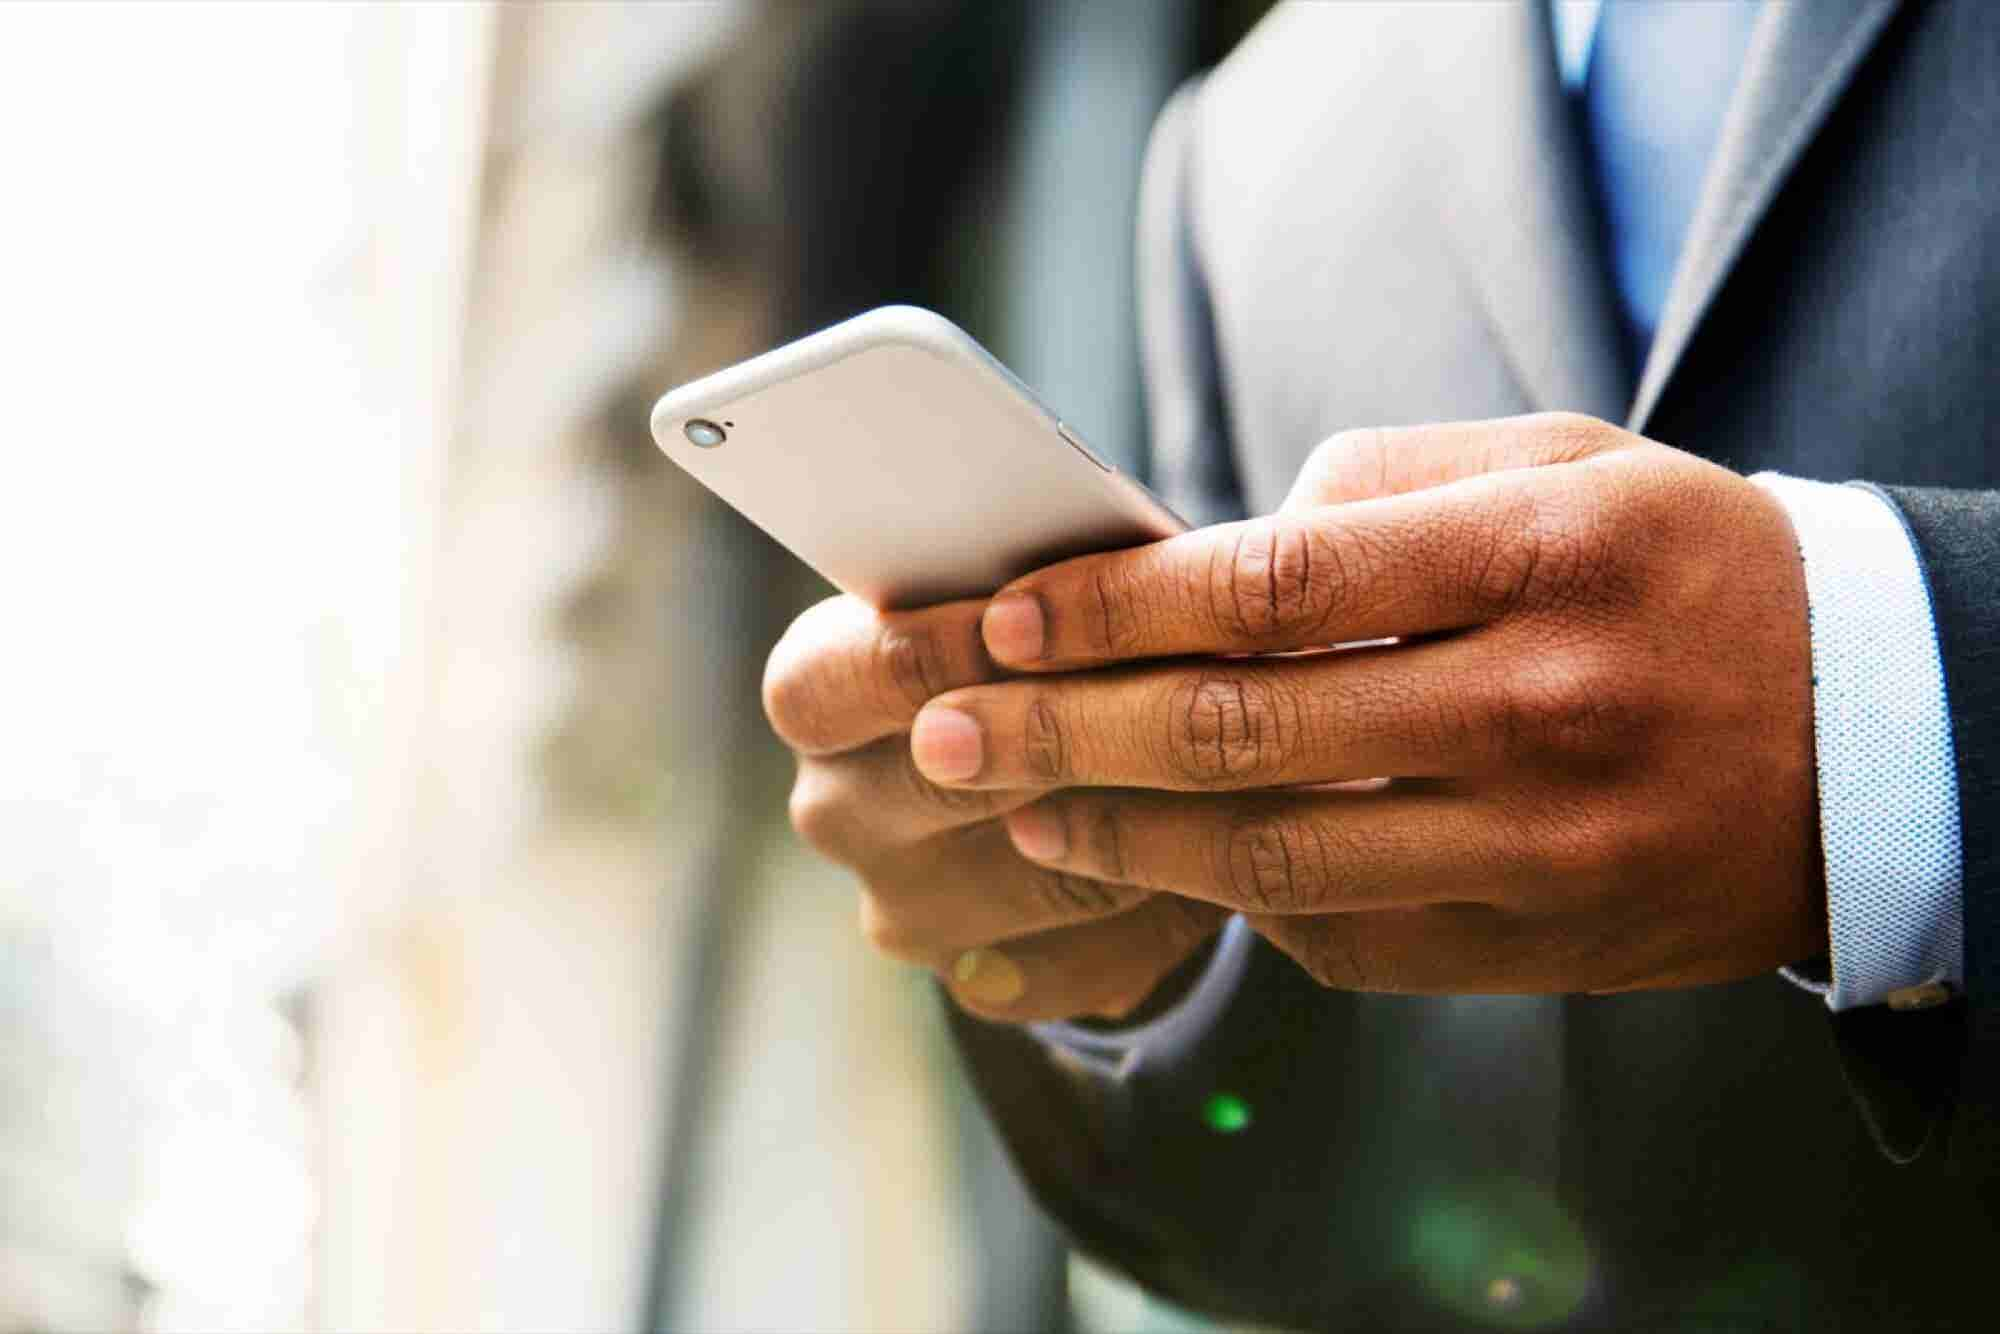 9 Key Mobile Technology Trends for 2017 (Infographic)